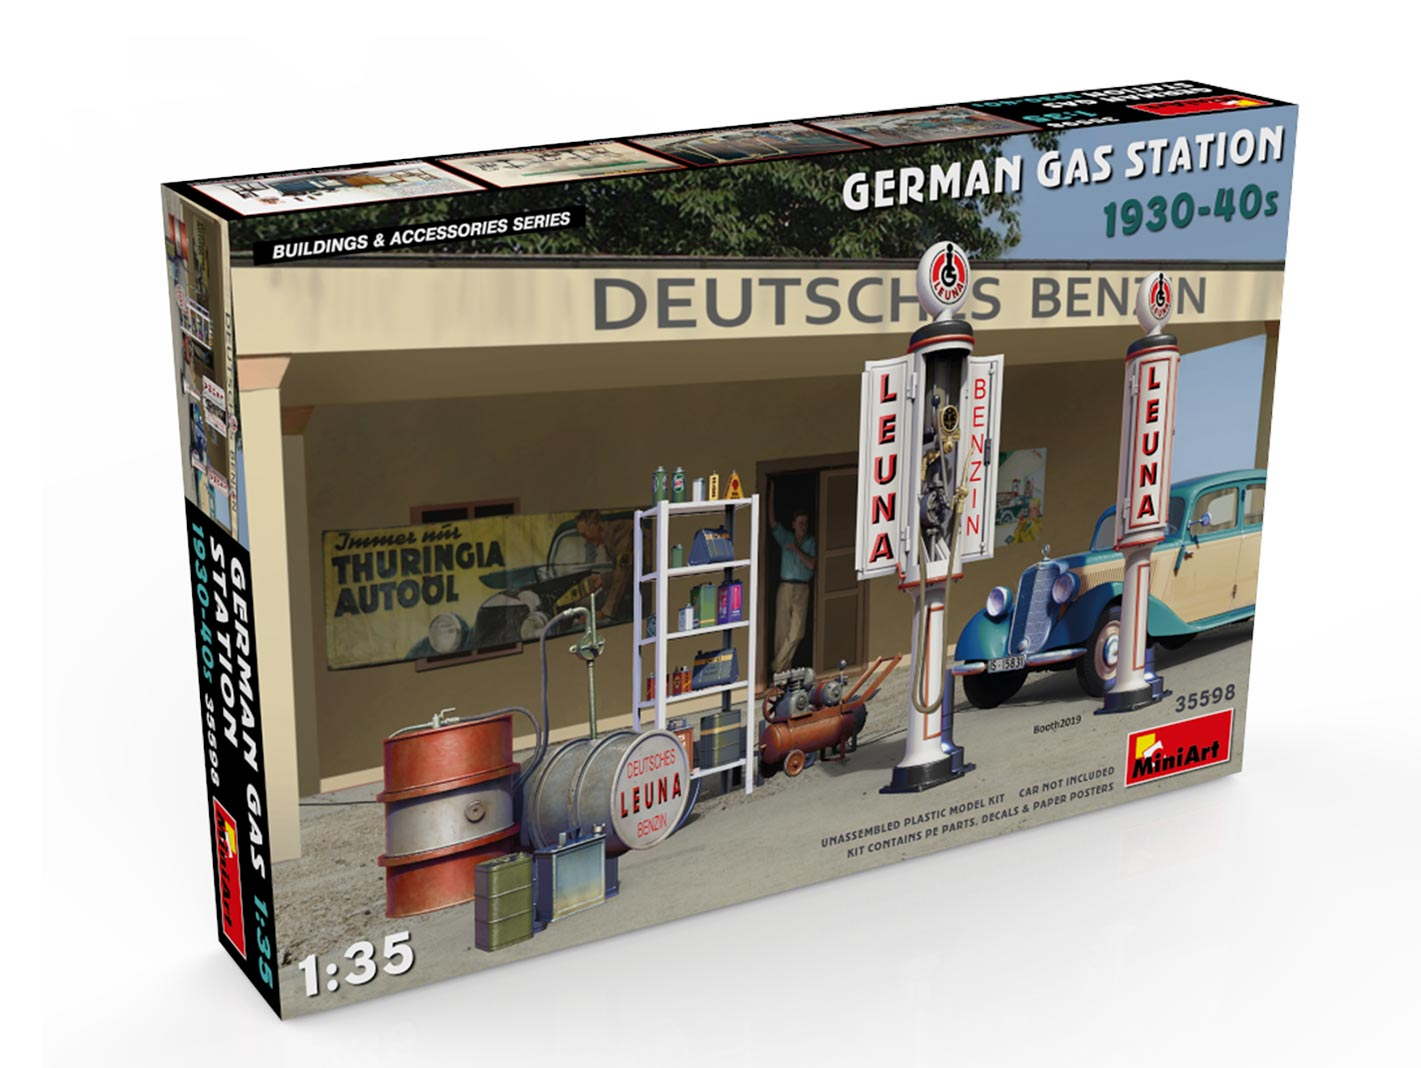 New Photos of Kit: 35598 GERMAN GAS STATION 1930-40s